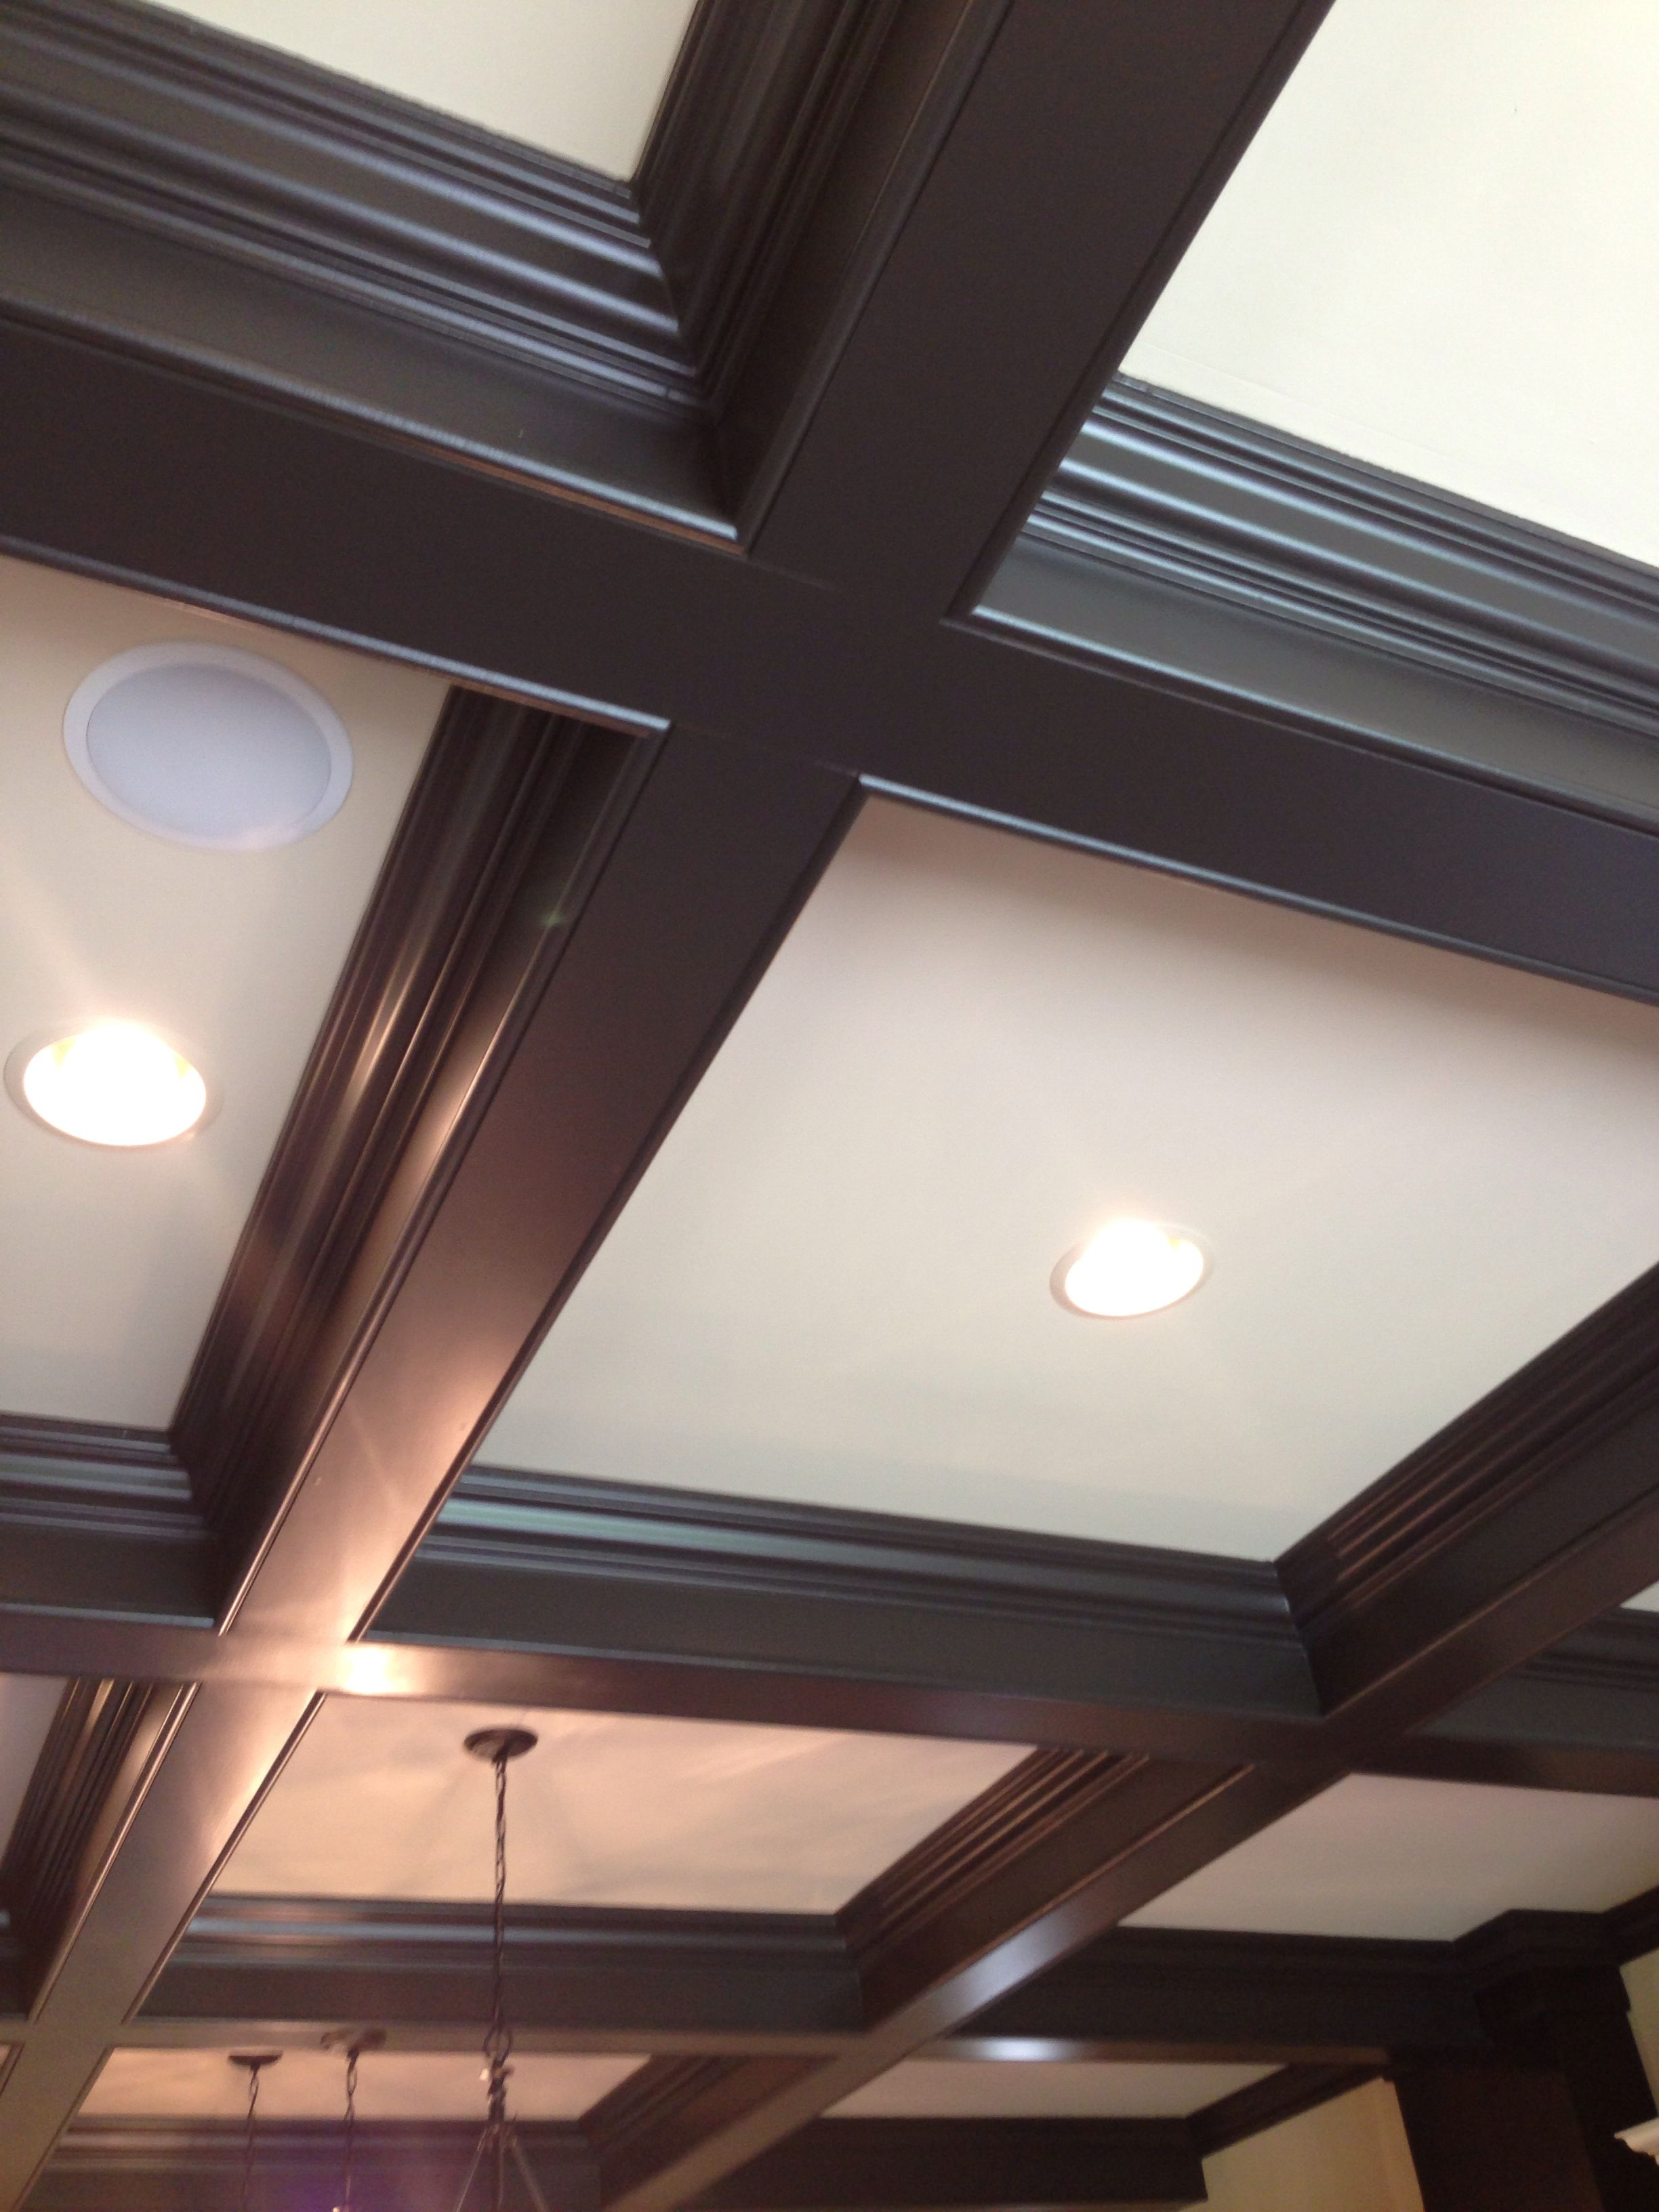 Coffered ceiling | Ceiling design, Ceiling lights ...